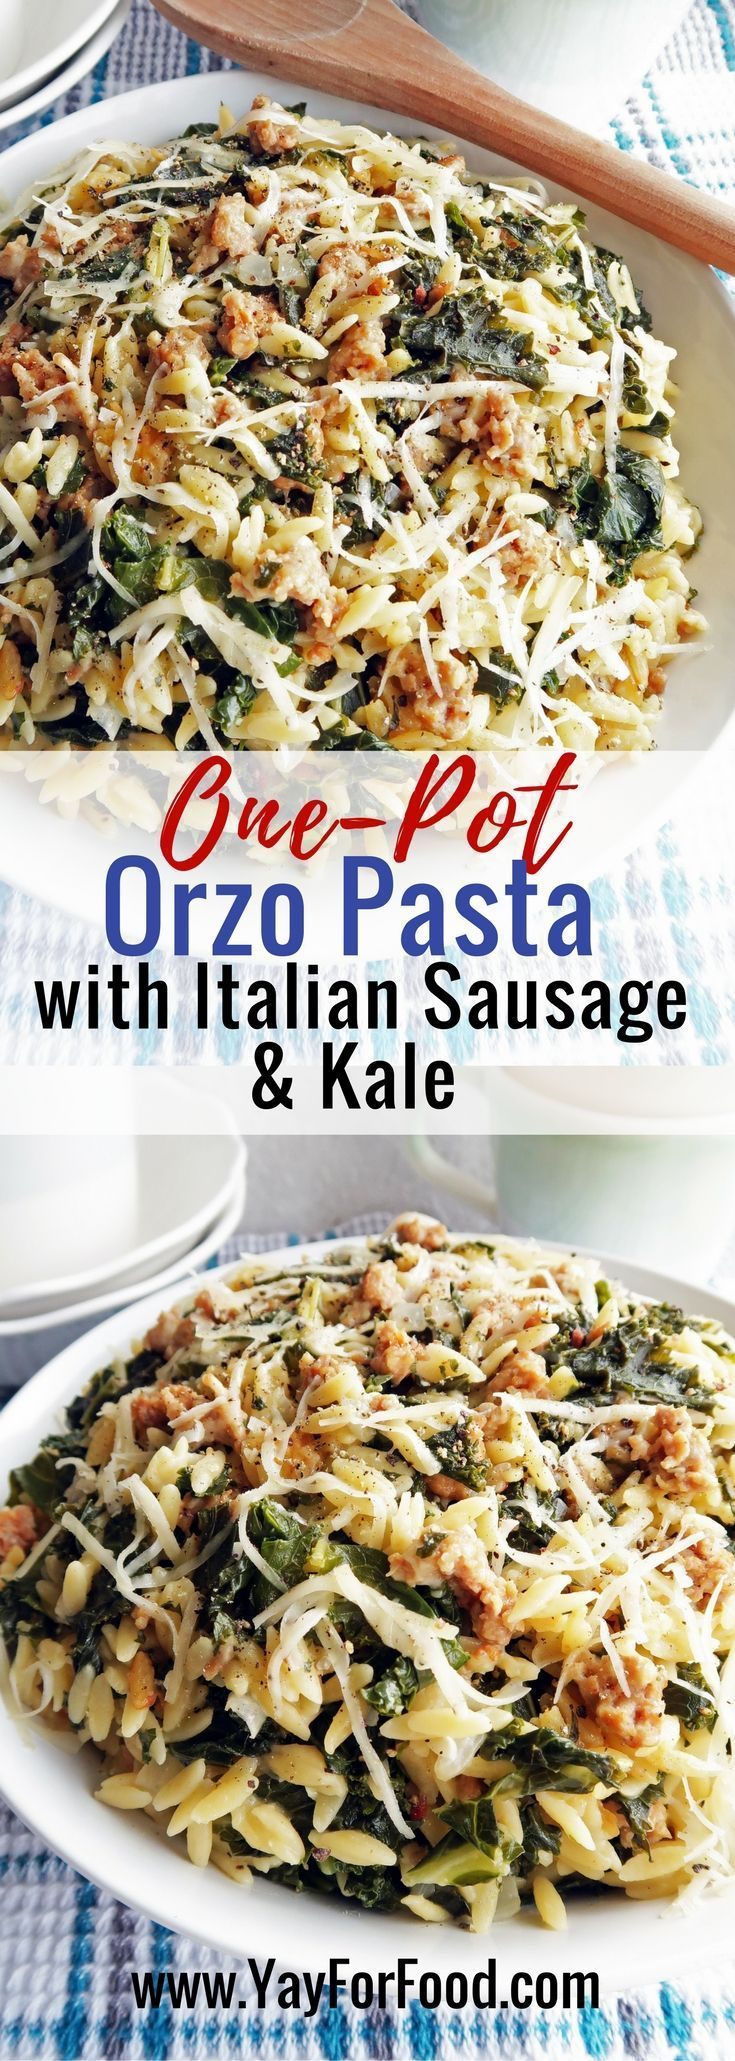 Creamy and Cheesy Orzo Pasta with Italian Sausage and Kale. A delicious, easy, and filling meal that's made in one pot and ready in 30 minutes or less! Main Dishes | One-Pot Recipes